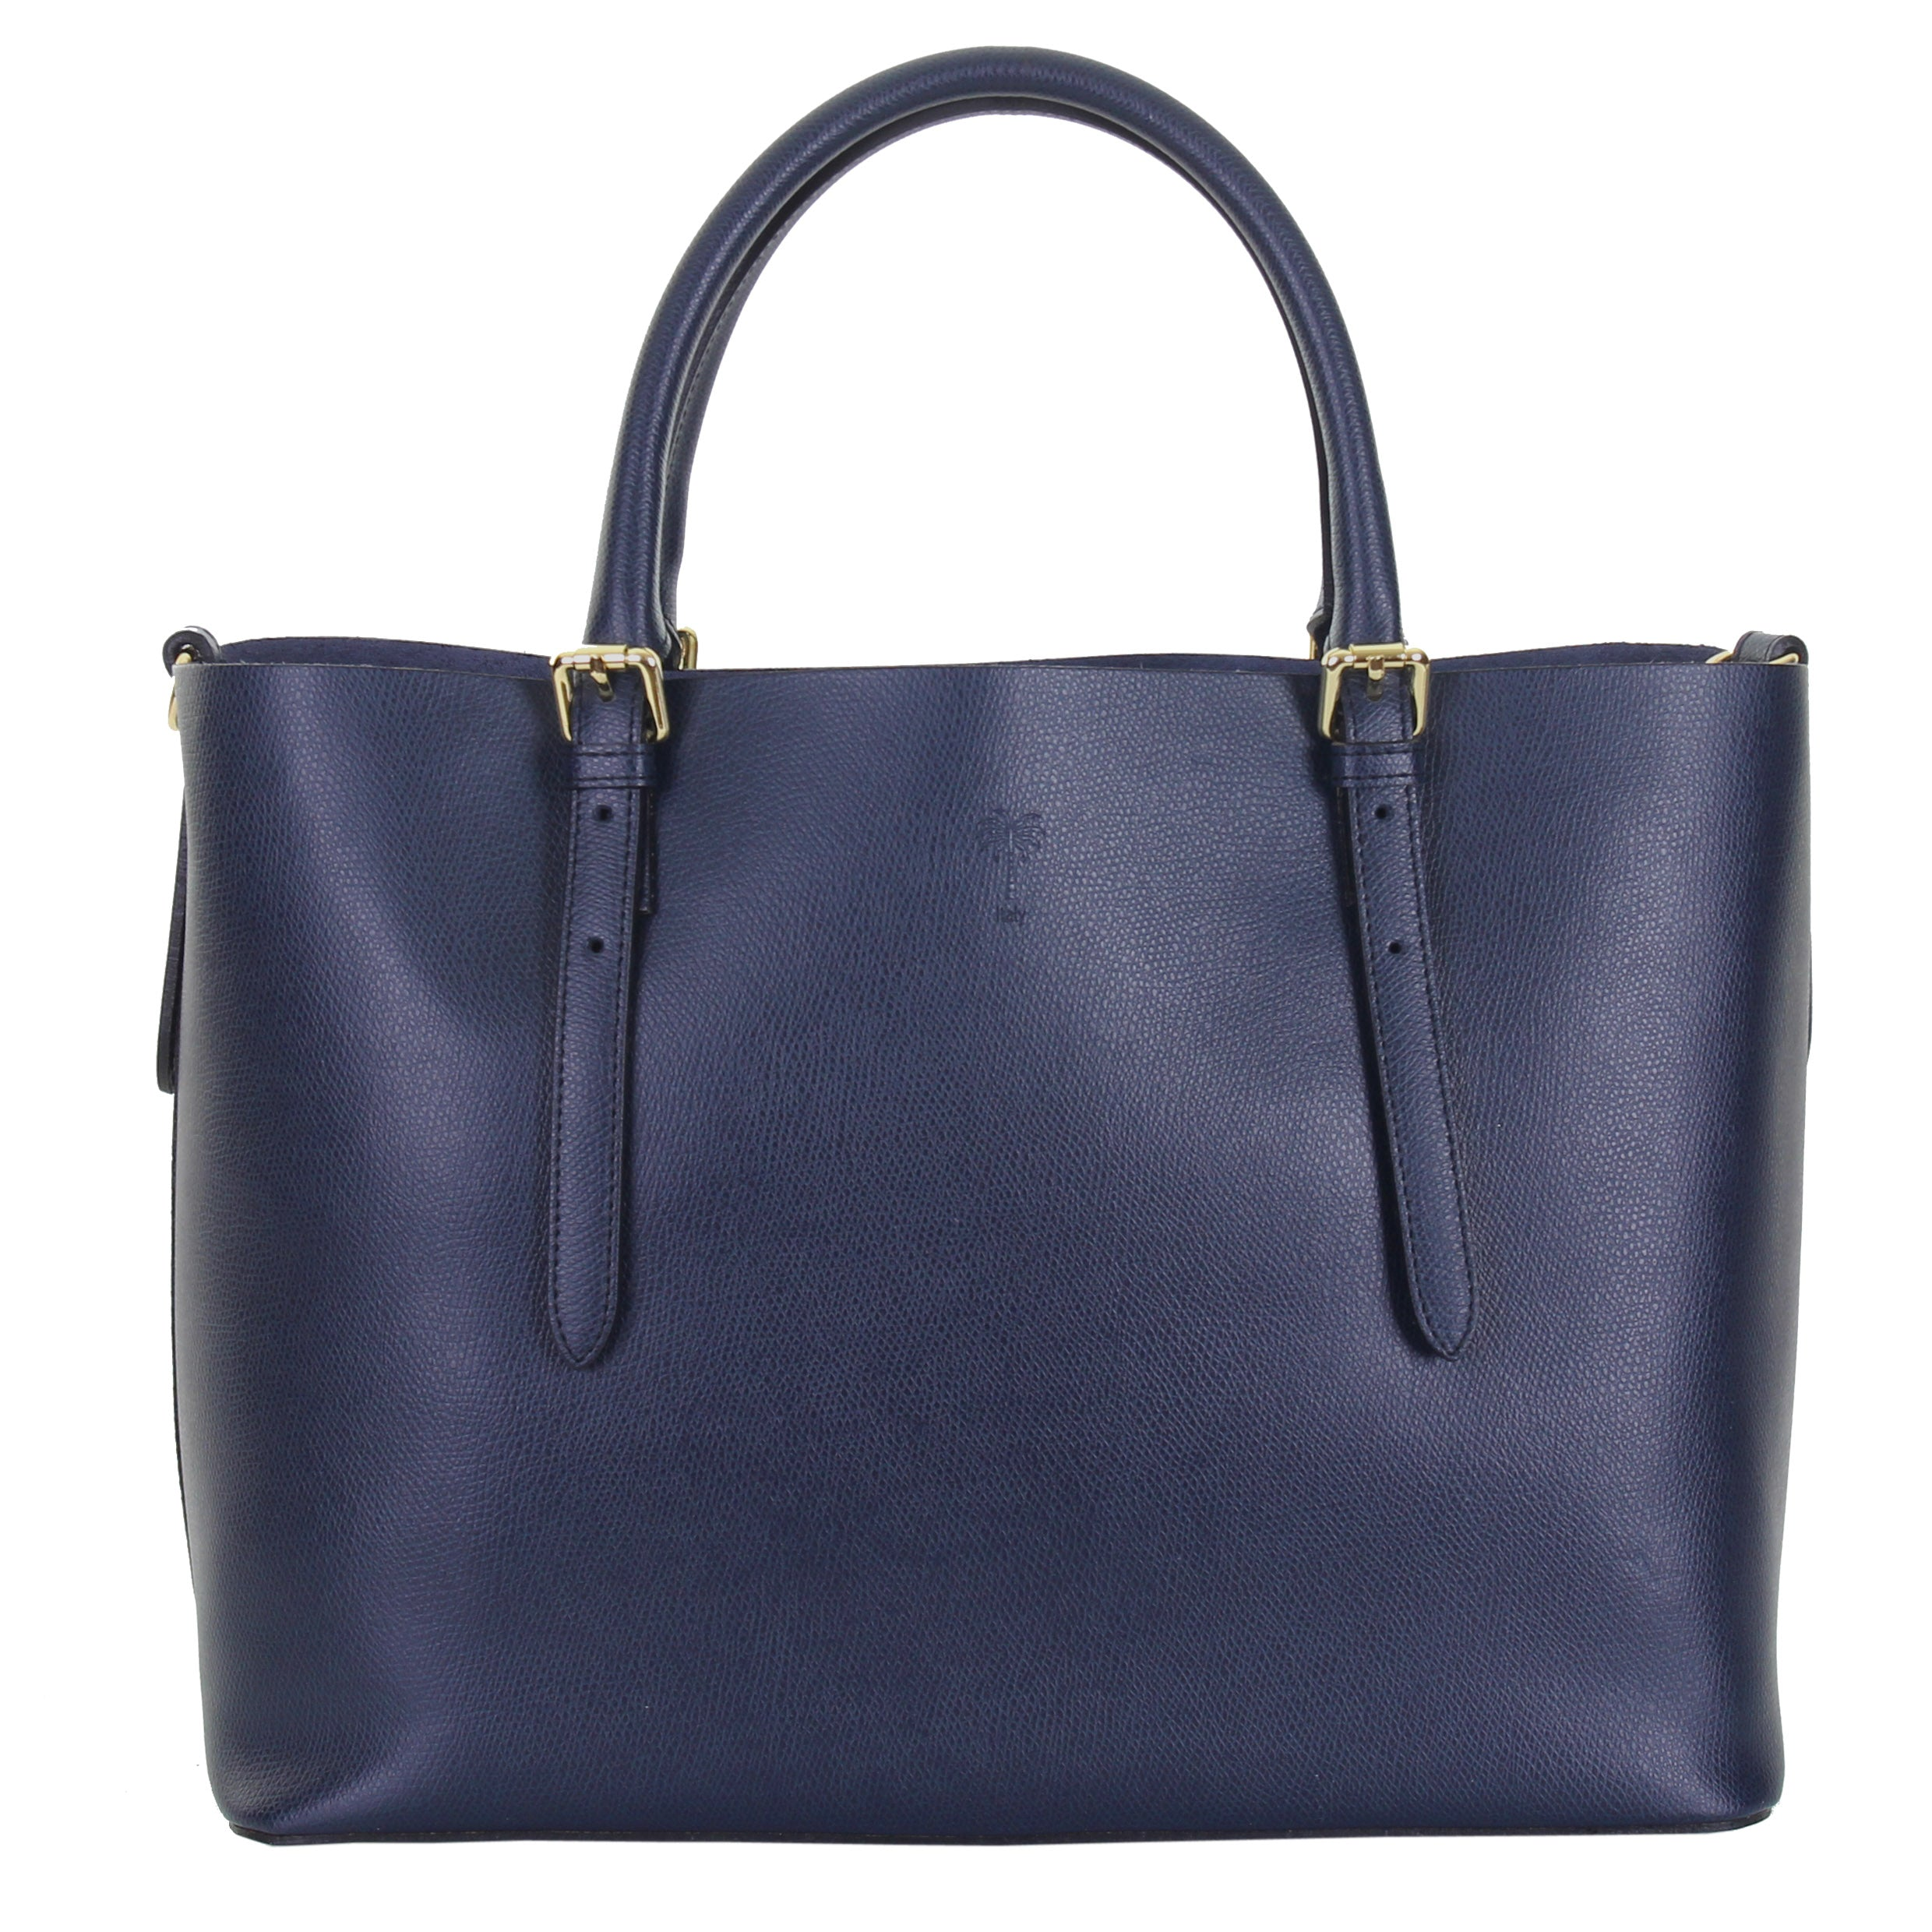 JENNIFER NAVY ITALIAN LEATHER TOTE